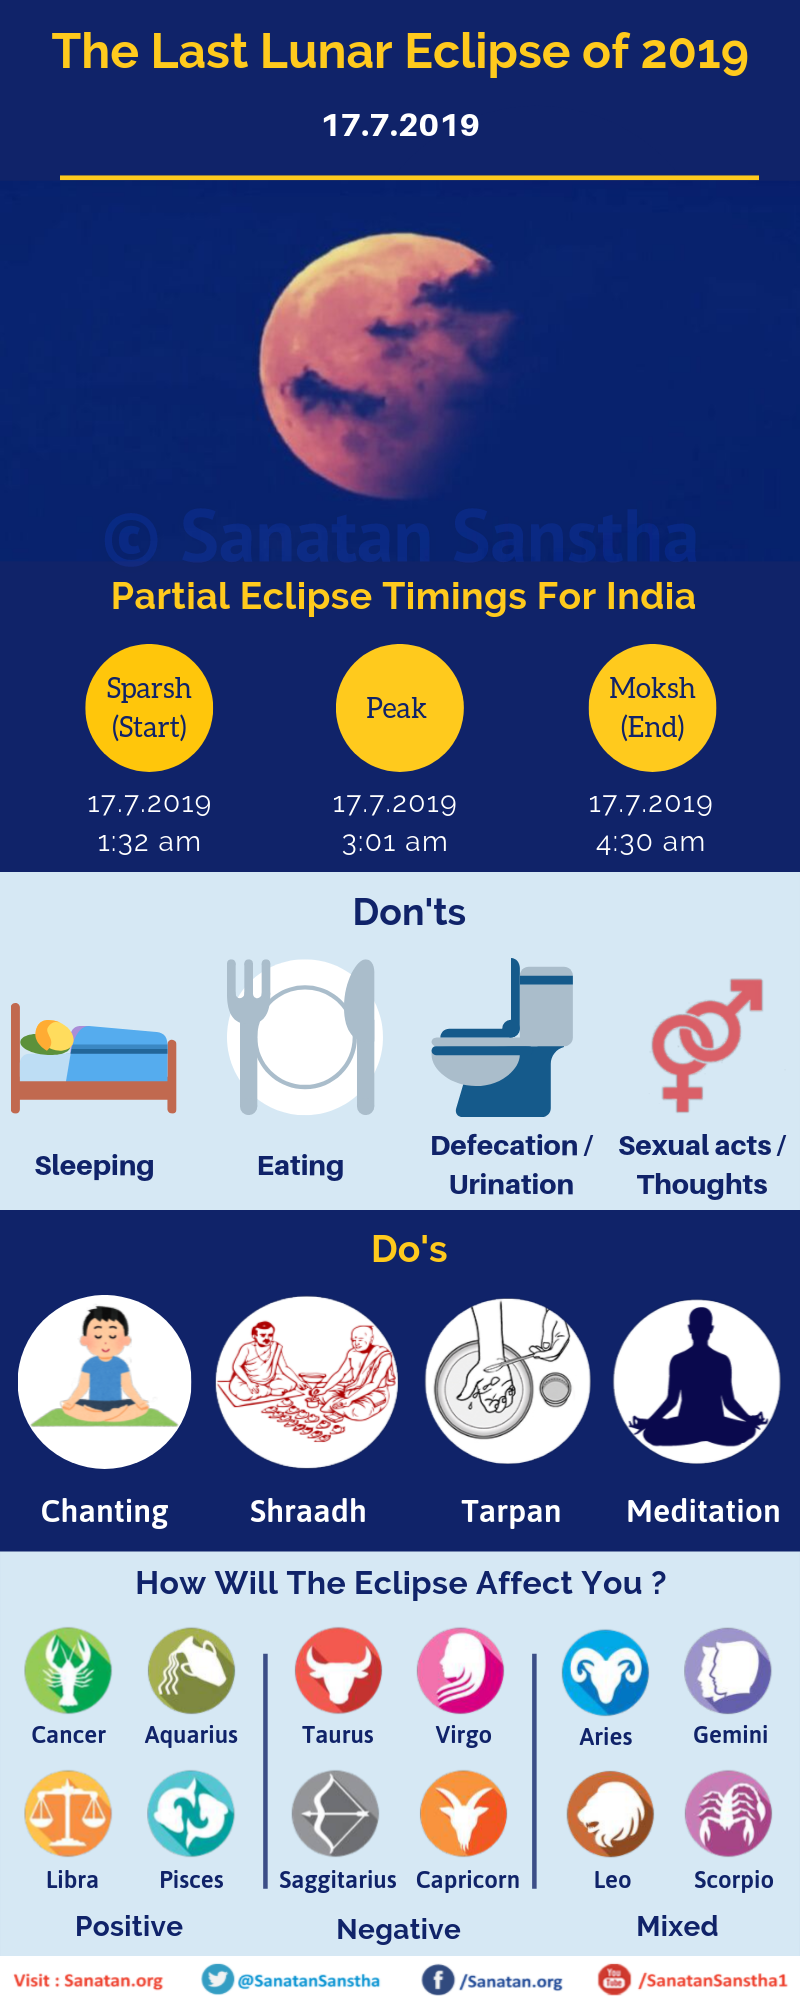 The last partial lunar eclipse of 2019 - Do's and Don'ts - Sanatan